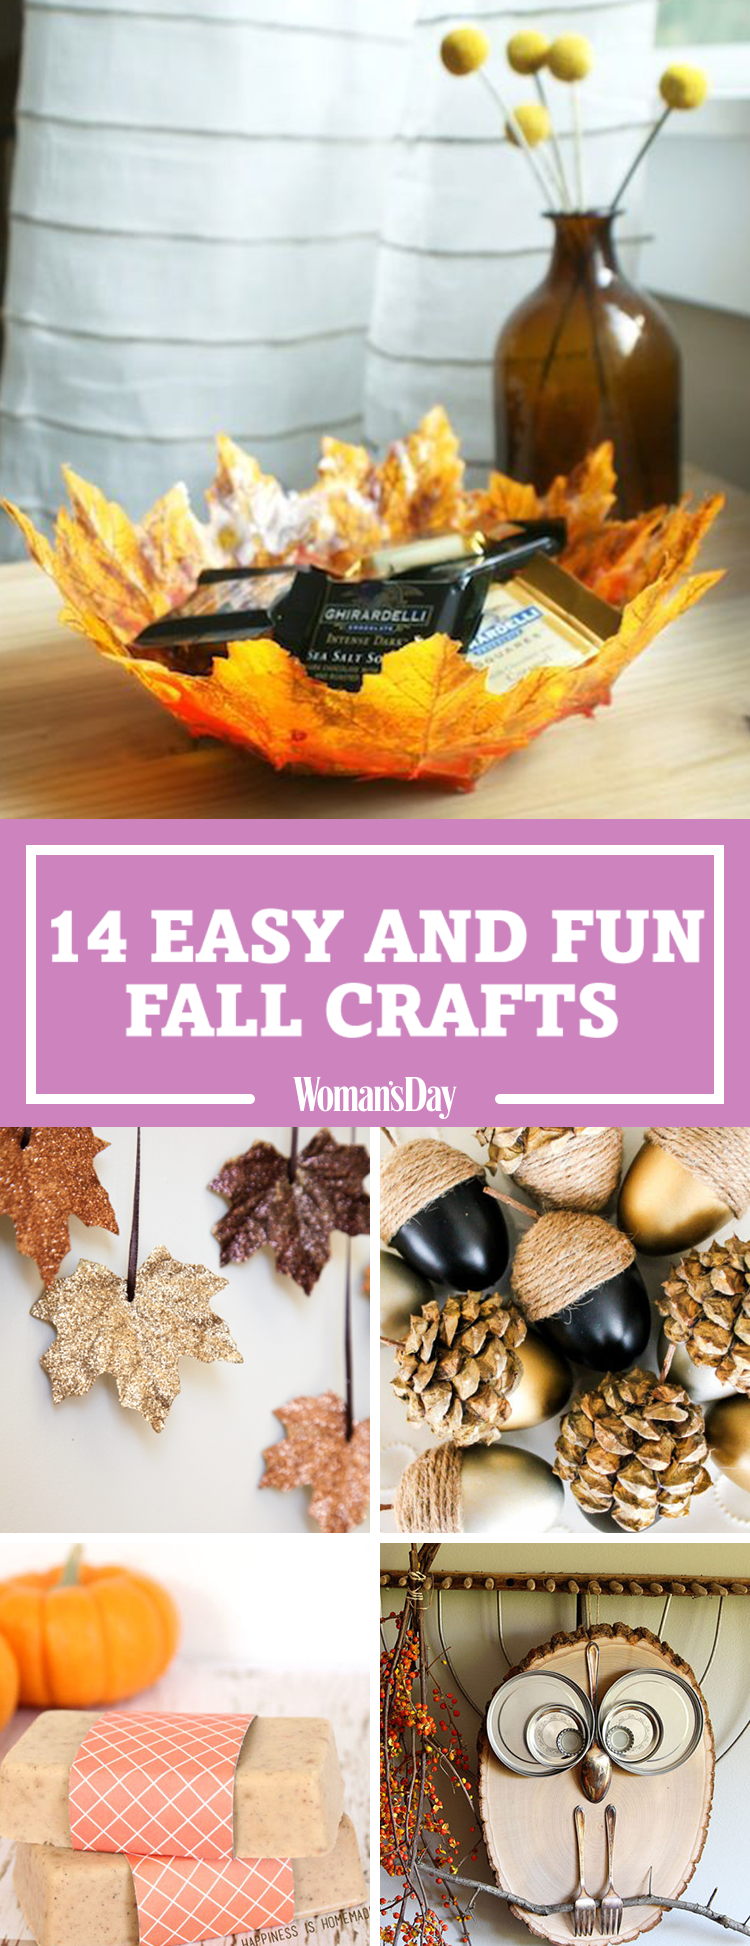 18 easy fall crafts fun ideas for autumn crafts - Fall Crafts